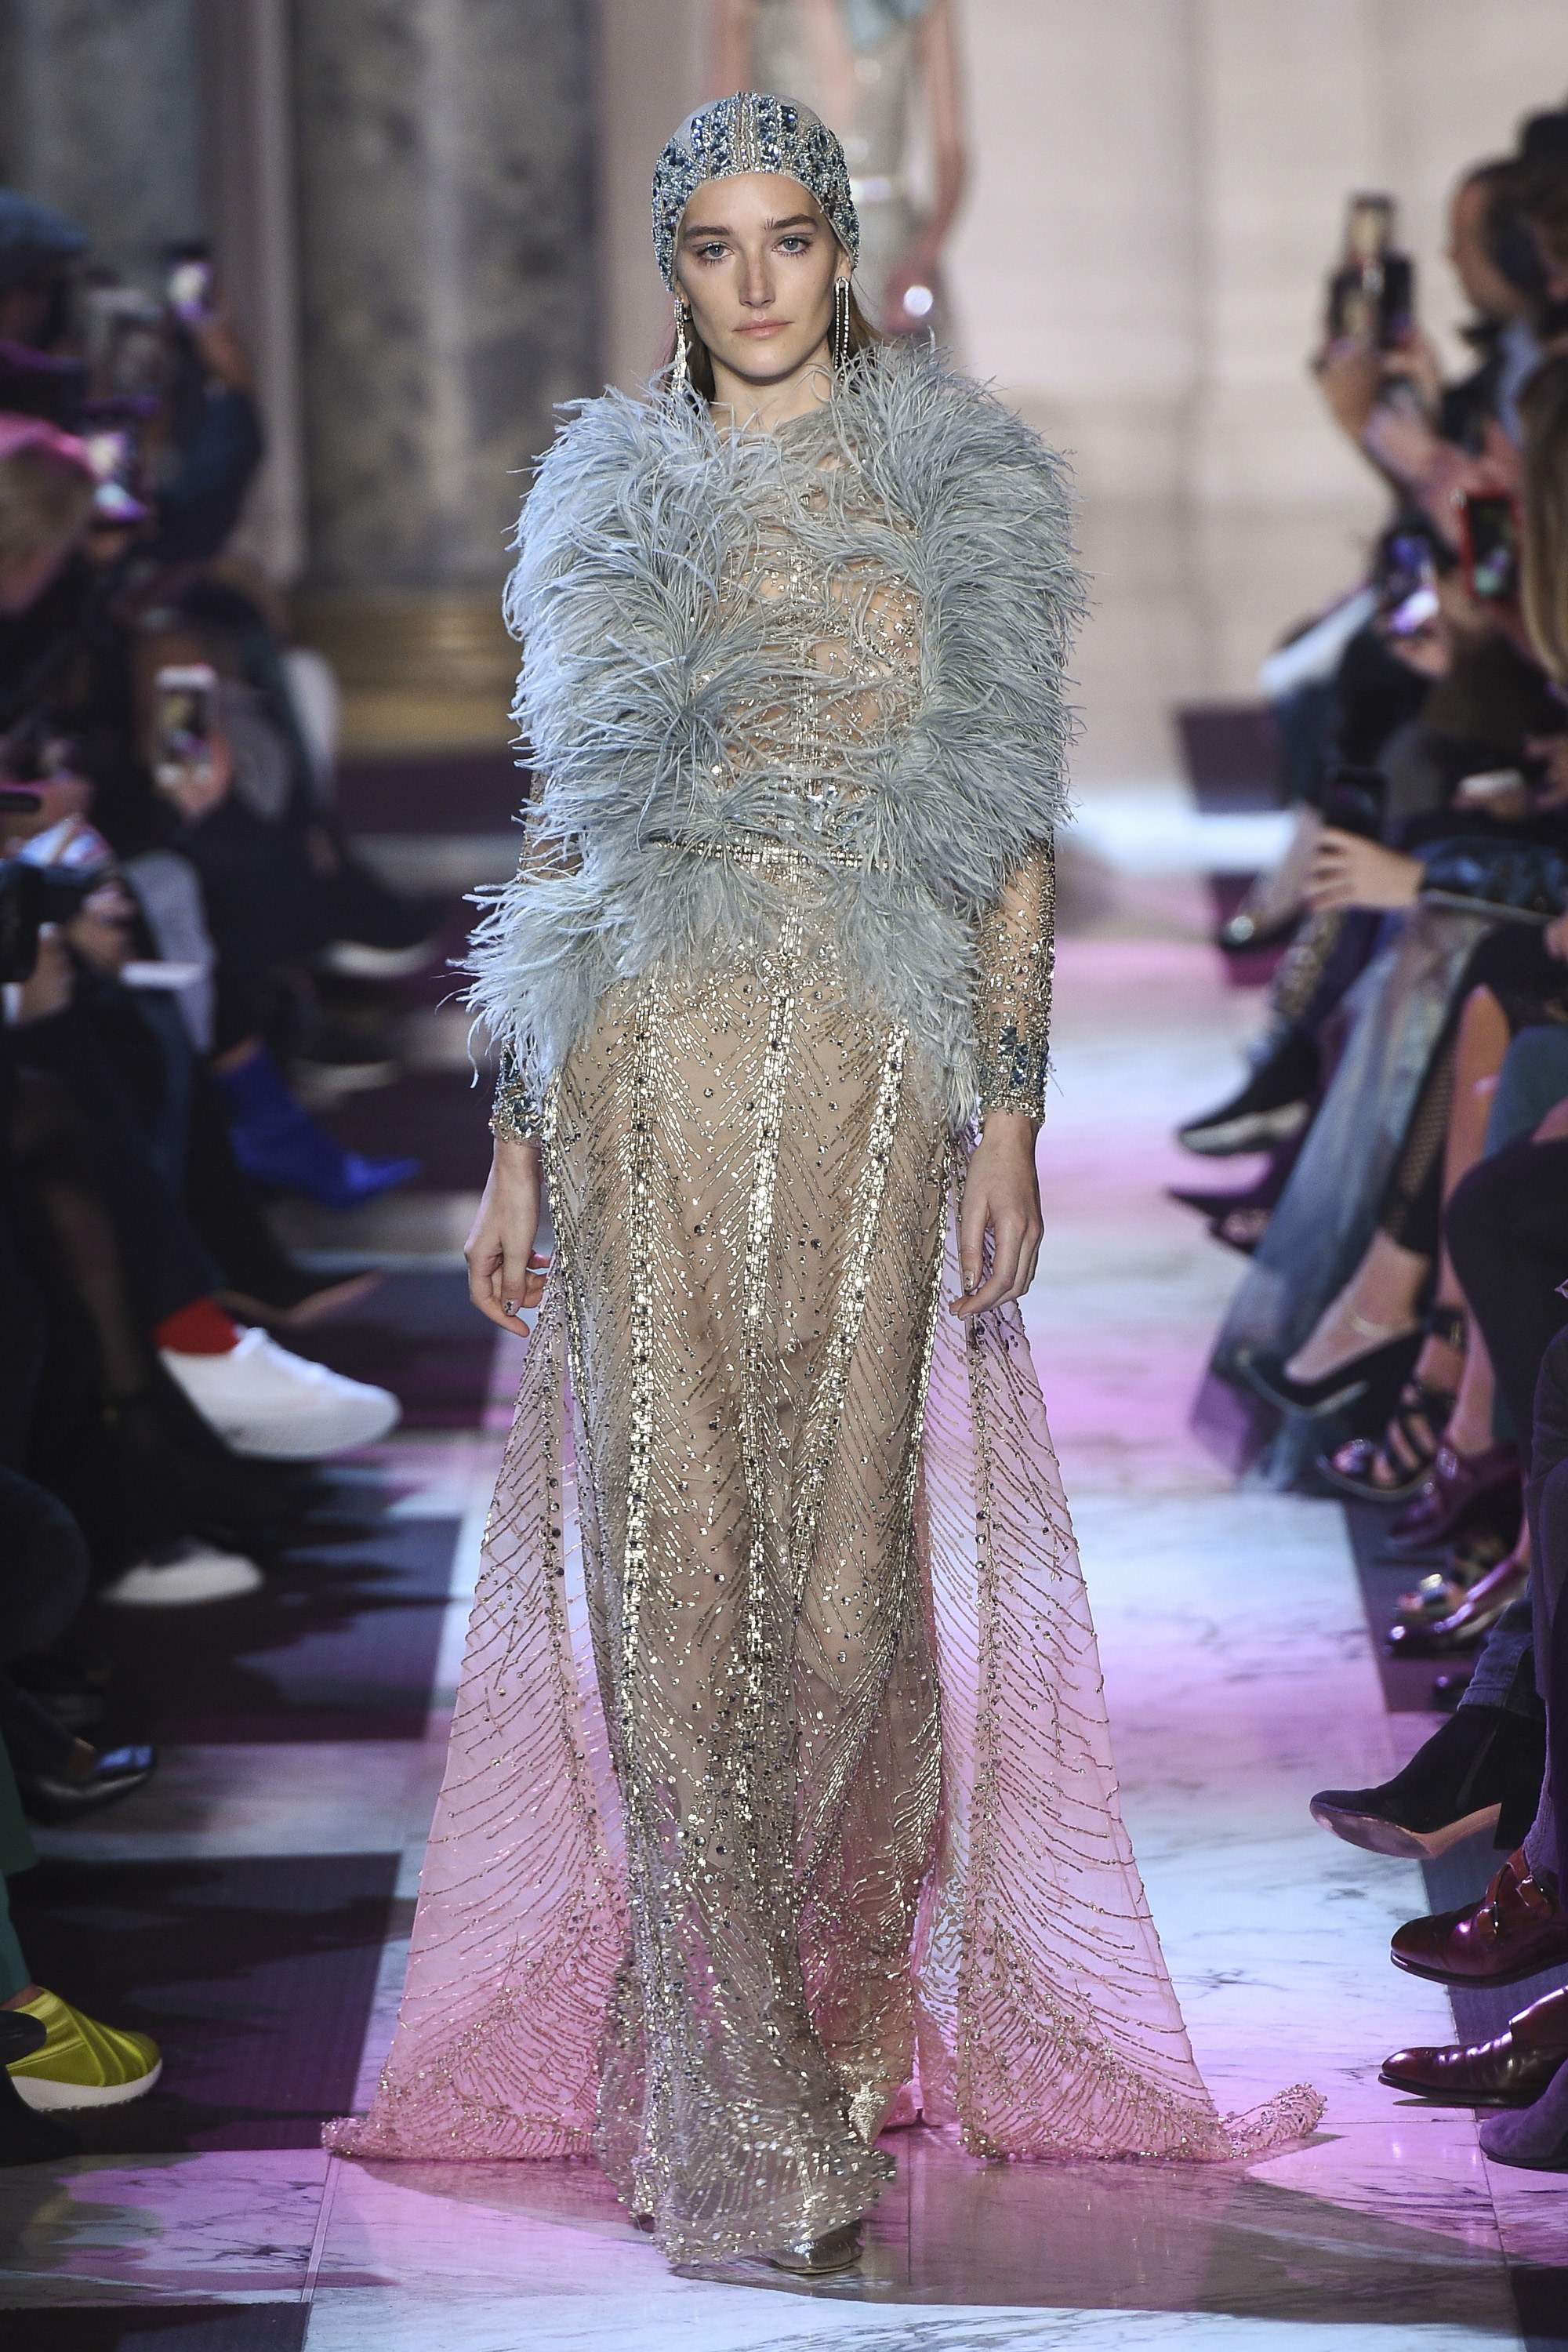 Haute Couture Paris Fashion Week Spring 2018 - Elie Saab - Photo - Kim WestonArnold - Indigital.tv - Model - Josephine Le Tutour